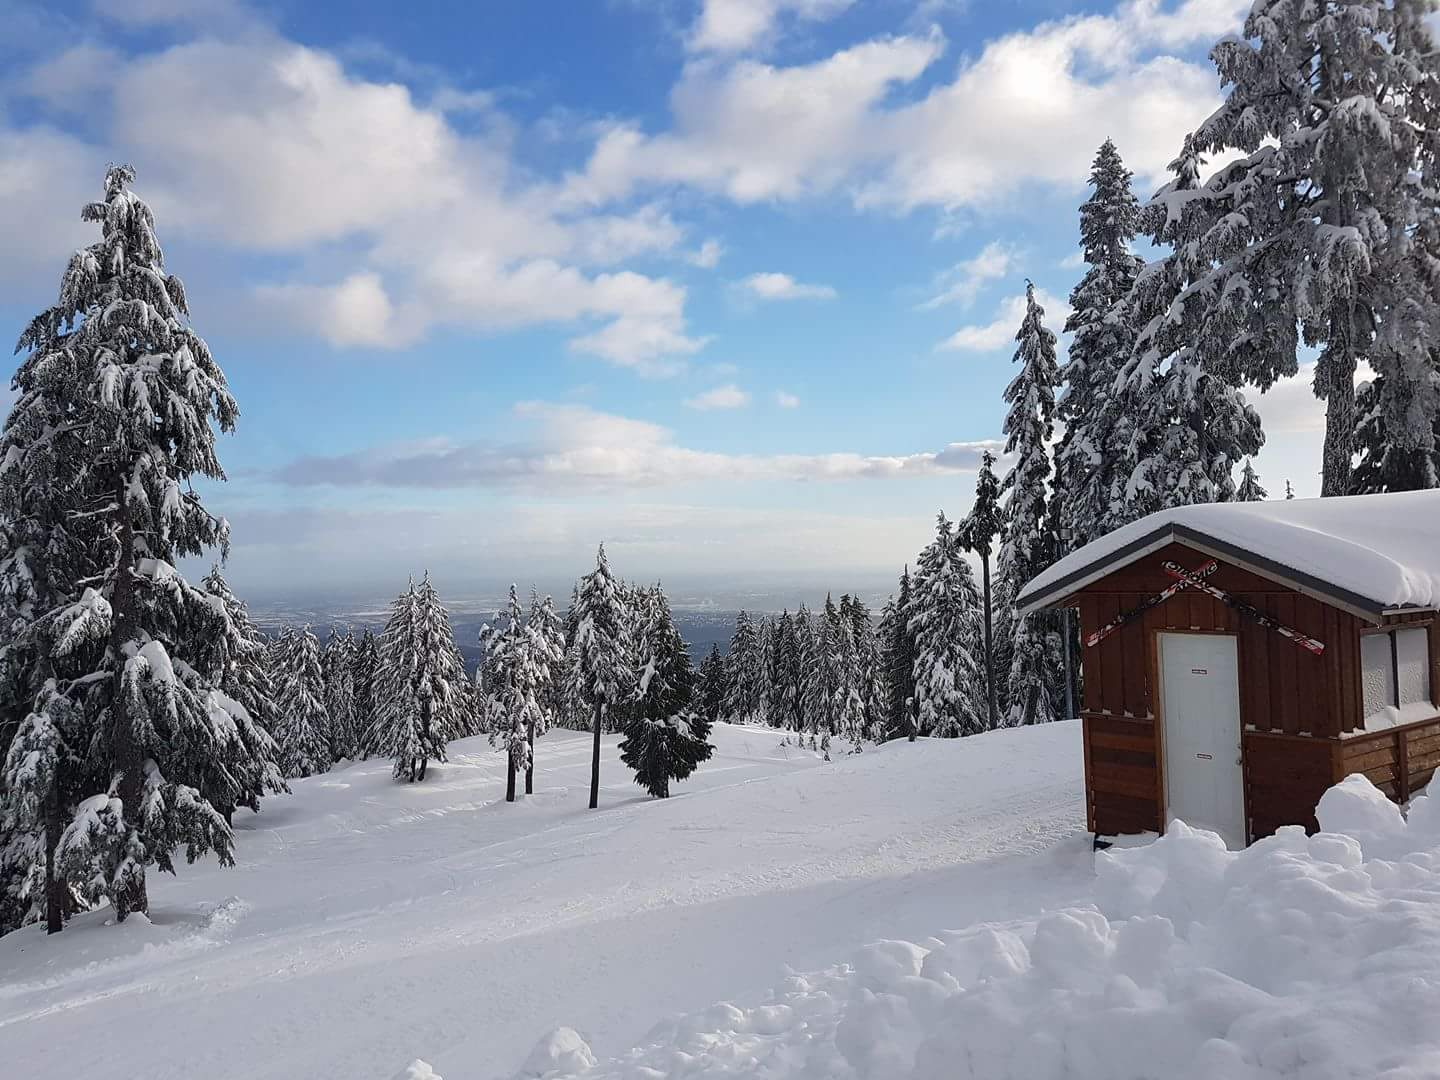 12cm of fresh snow in the last 24hrs, clear skies and soft packed conditions...Winterwonderland Alert up here! #mtseymour #snow #powder https://t.co/0V0dOpbw5u